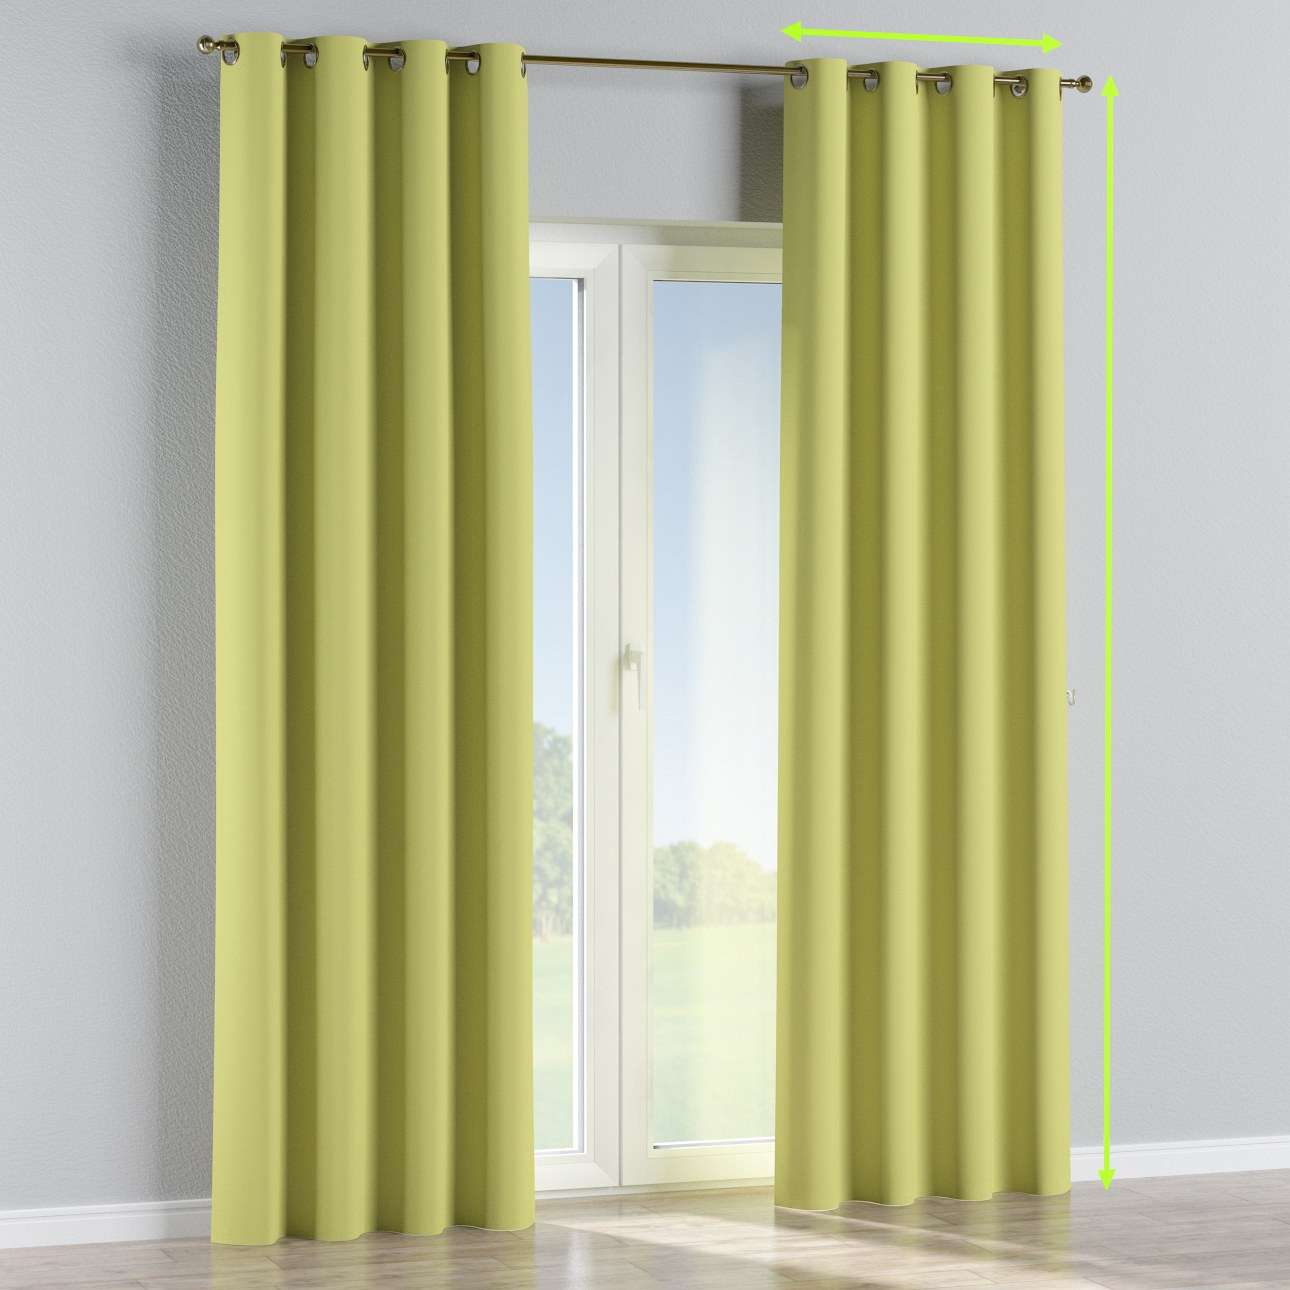 Eyelet curtain in collection Blackout, fabric: 269-17